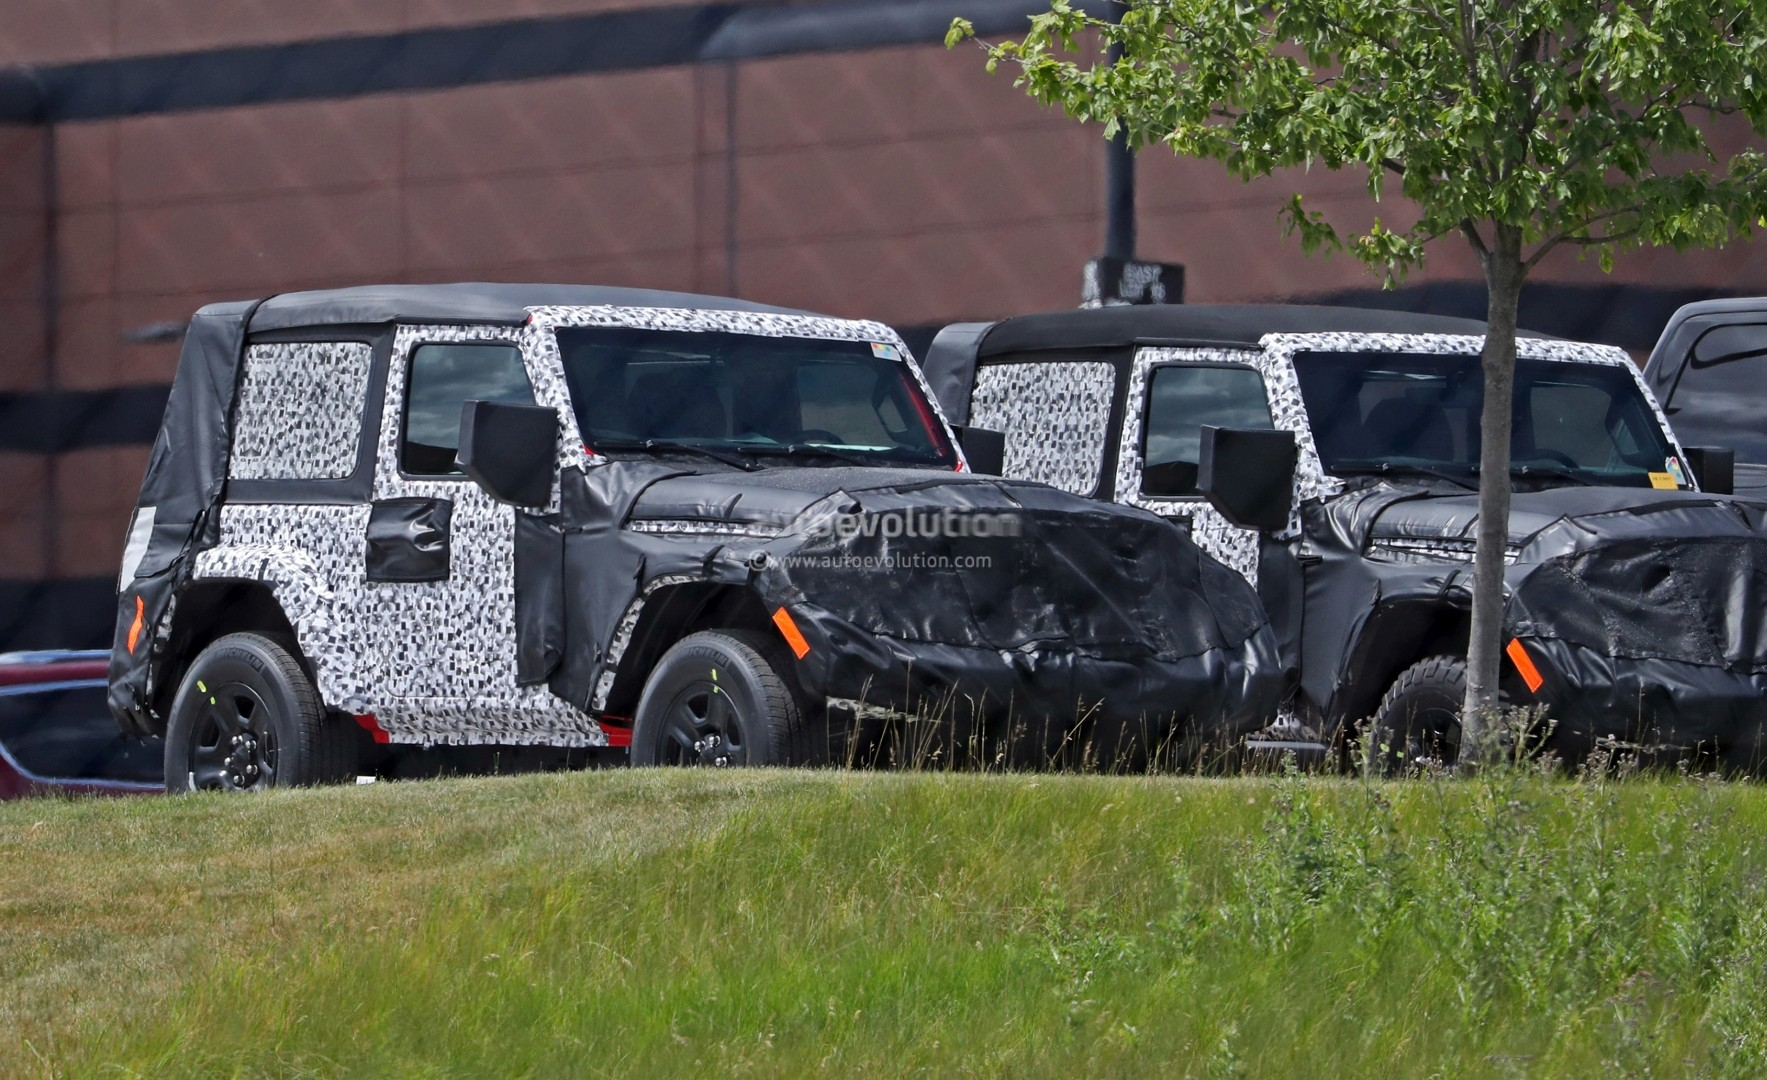 2018 jeep wrangler jl two door spied shows hardtop and soft top versions autoevolution. Black Bedroom Furniture Sets. Home Design Ideas